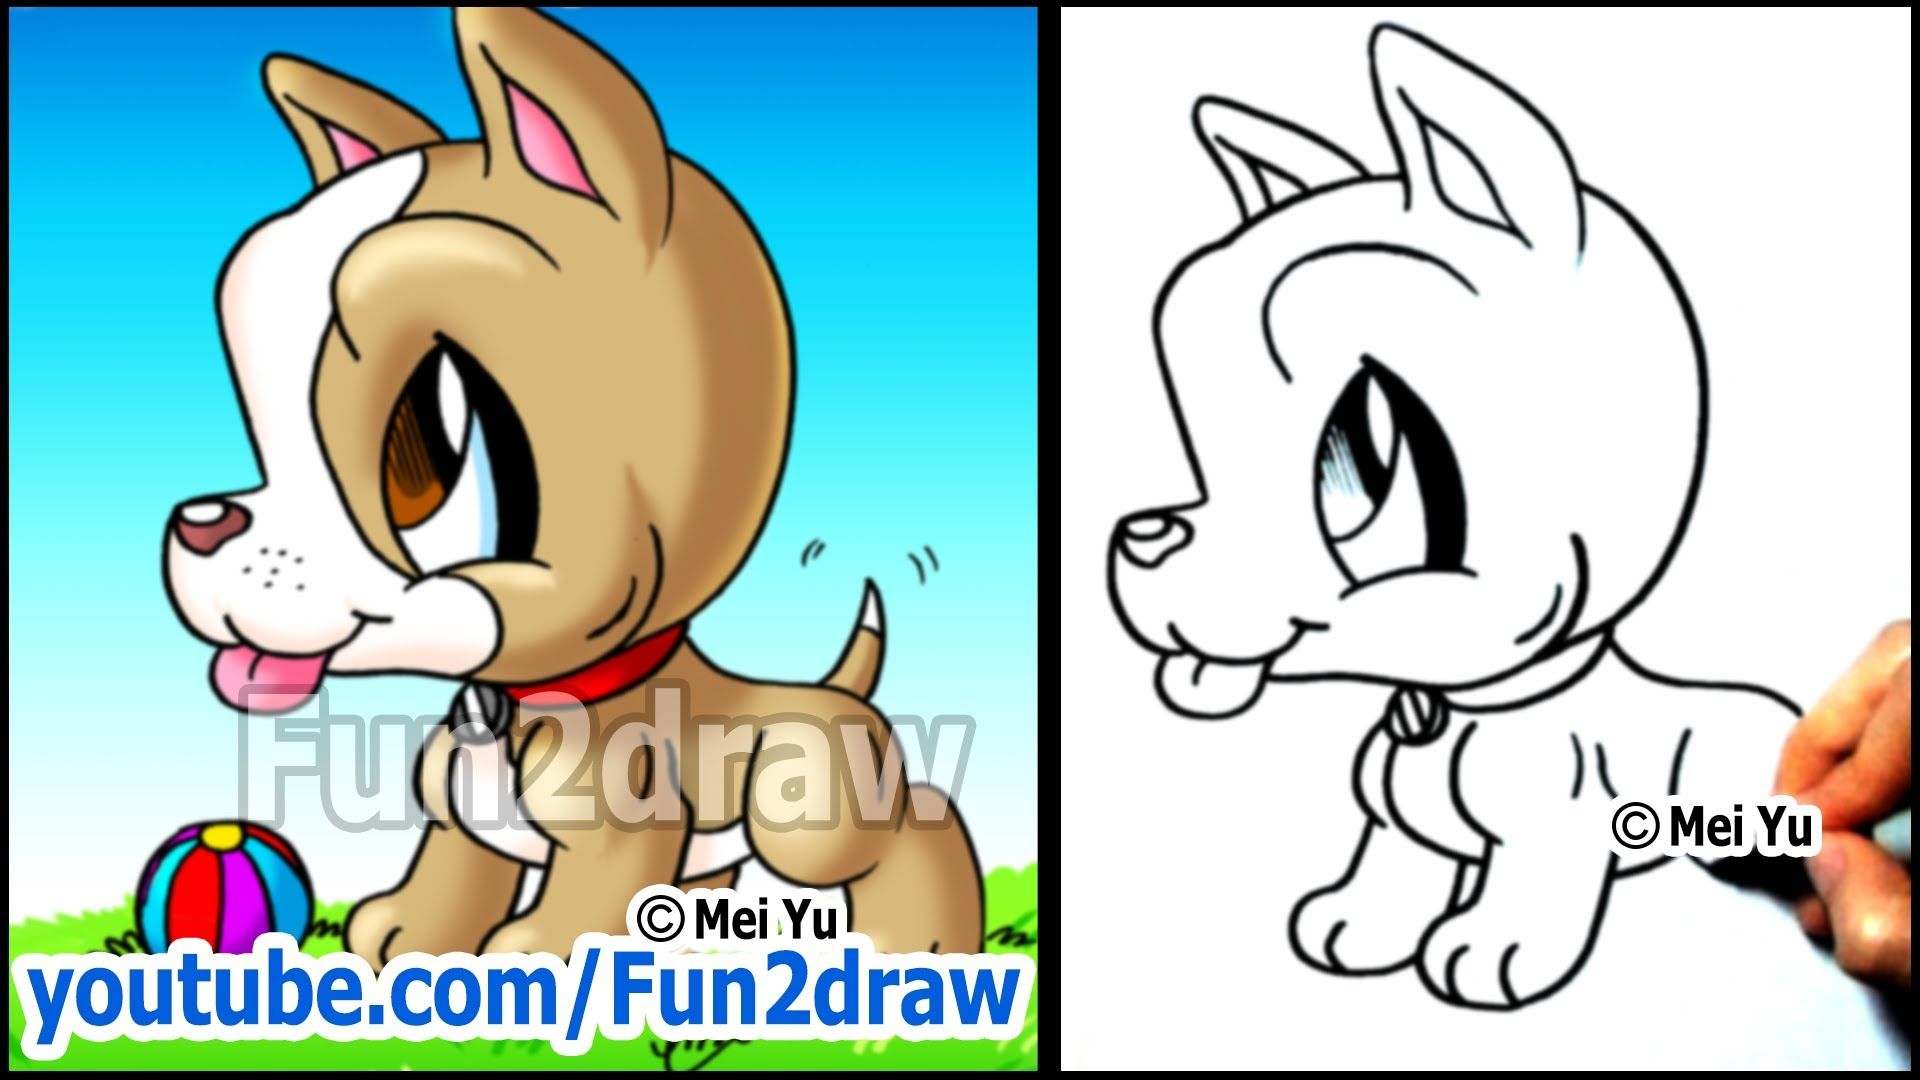 Pitbull Puppy  How To Draw A Dog  Cute Easy Cartoon Tutorial